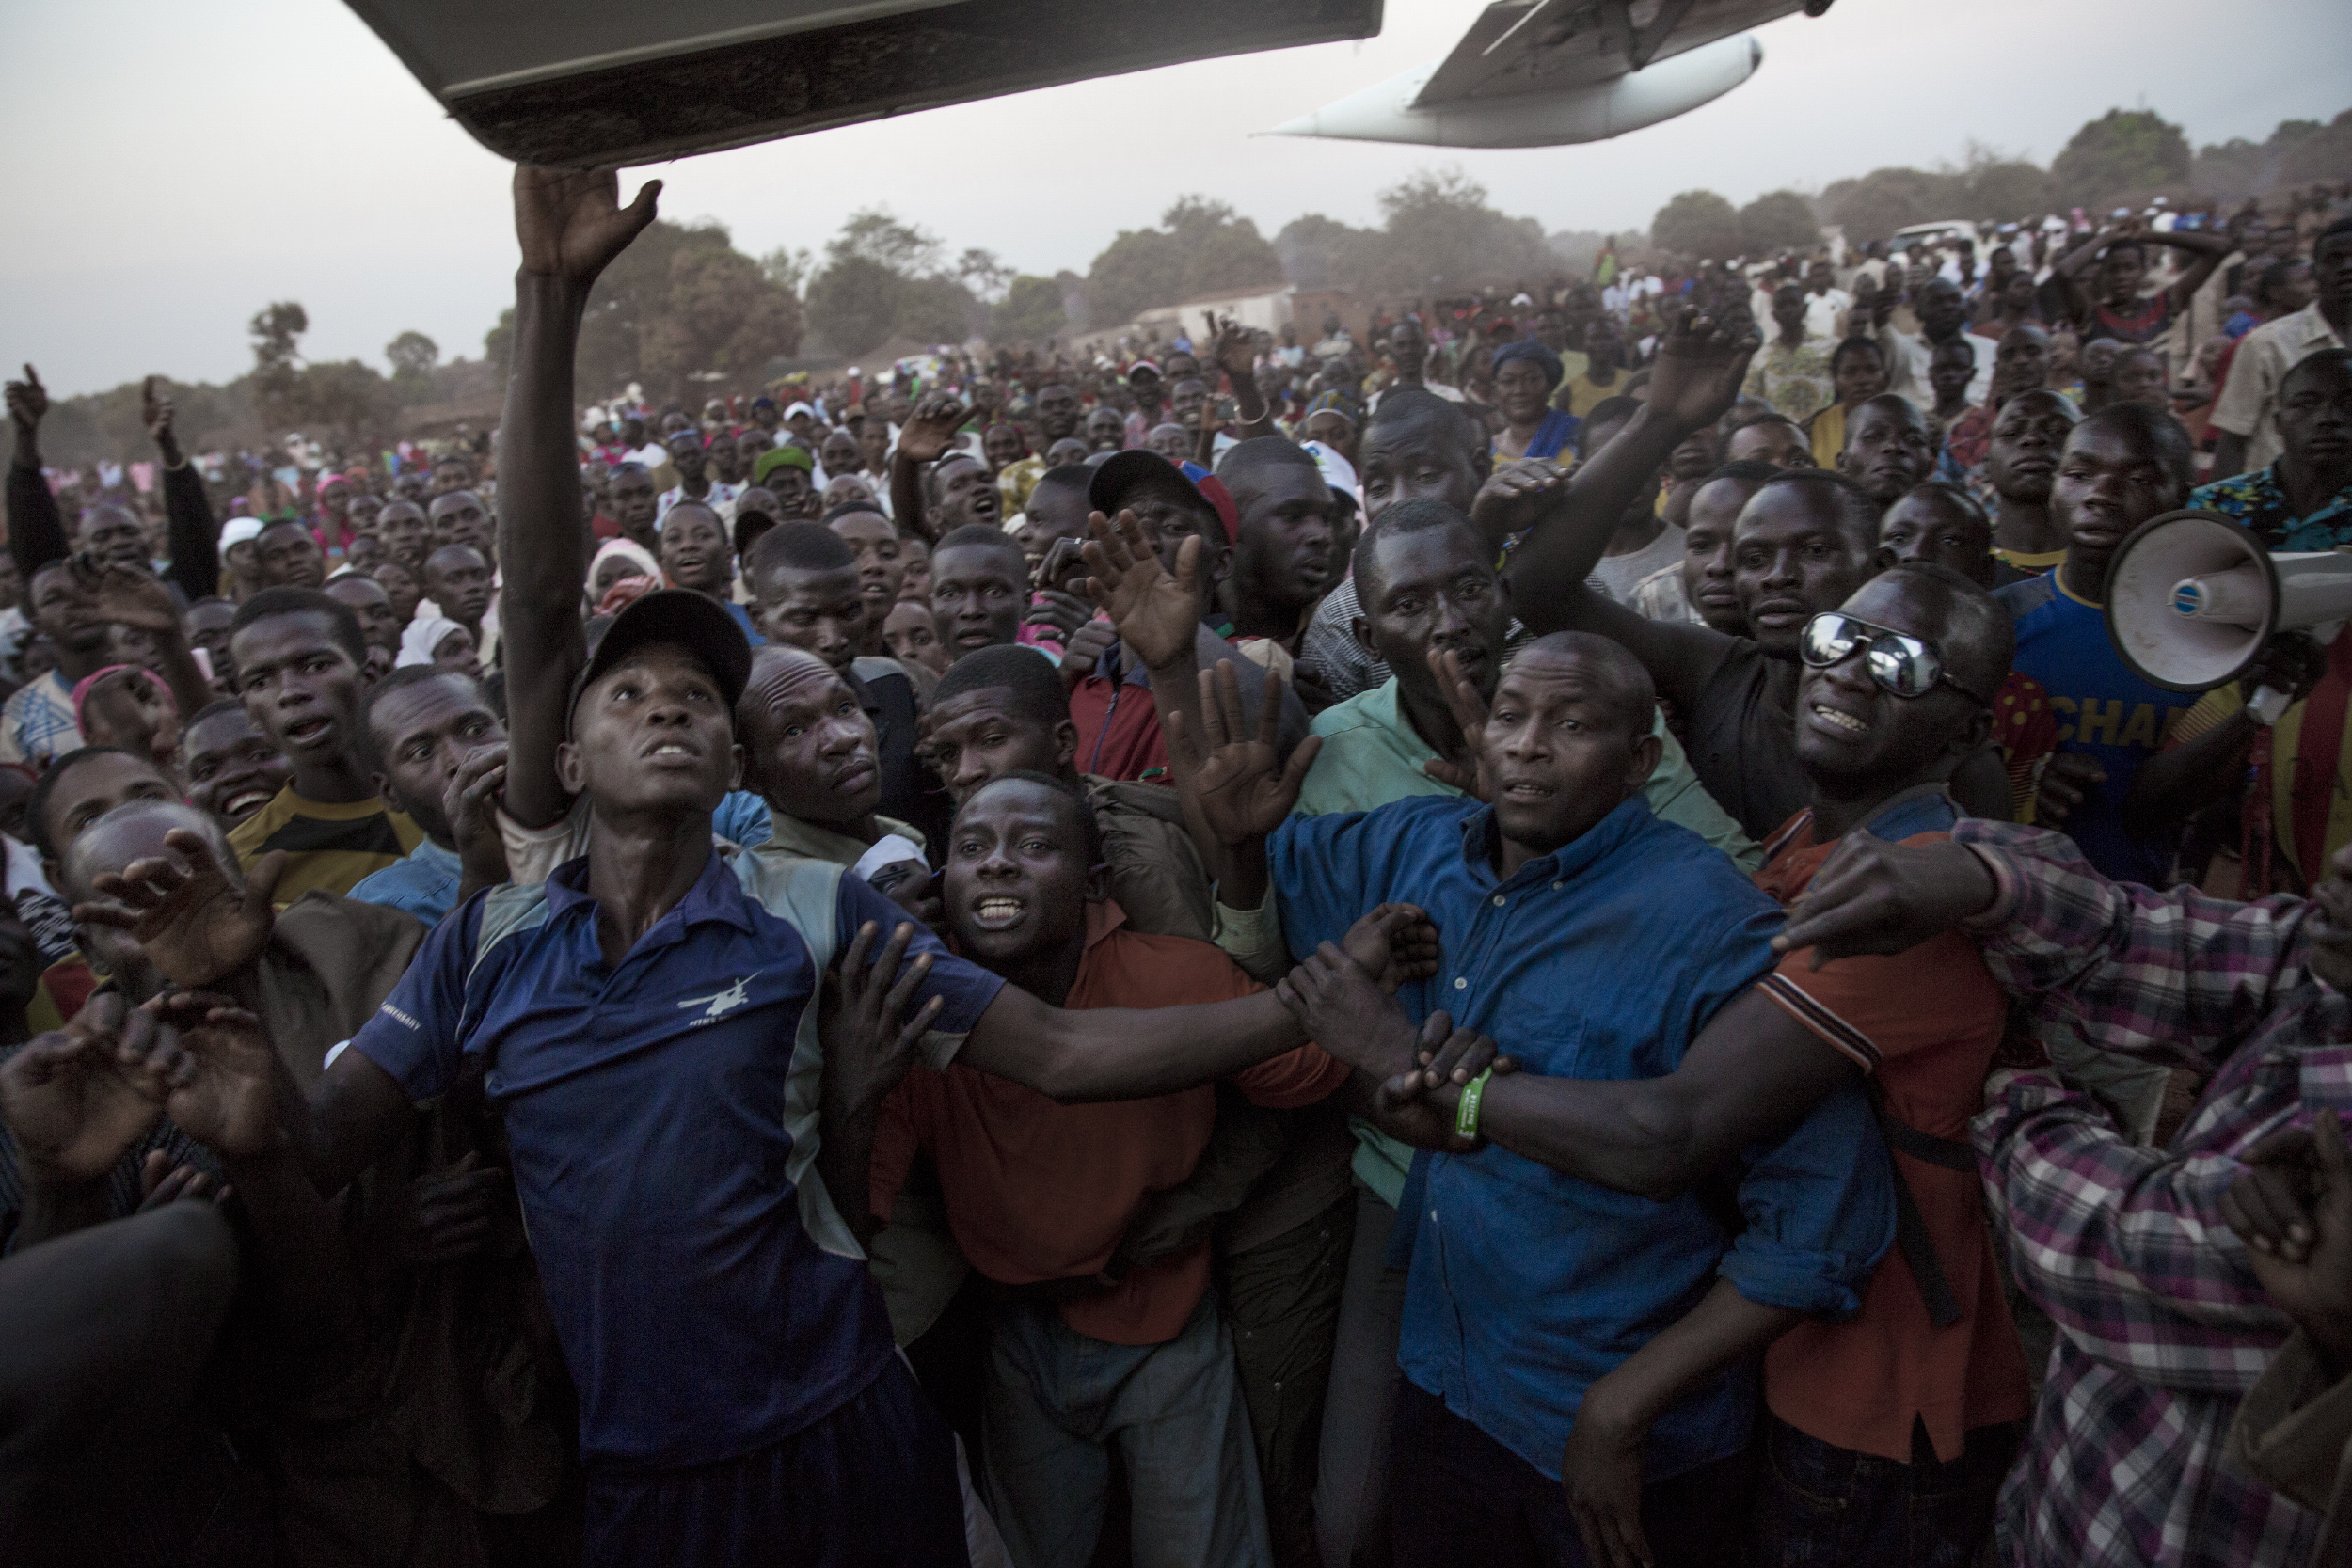 Supporters of Muslim presidential candidate Karim Meckassoua are held back at an airport in Bria, eastern Central African Republic, Dec. 24, 2015. Thousands of supporters, some asking for money, came to welcome him.